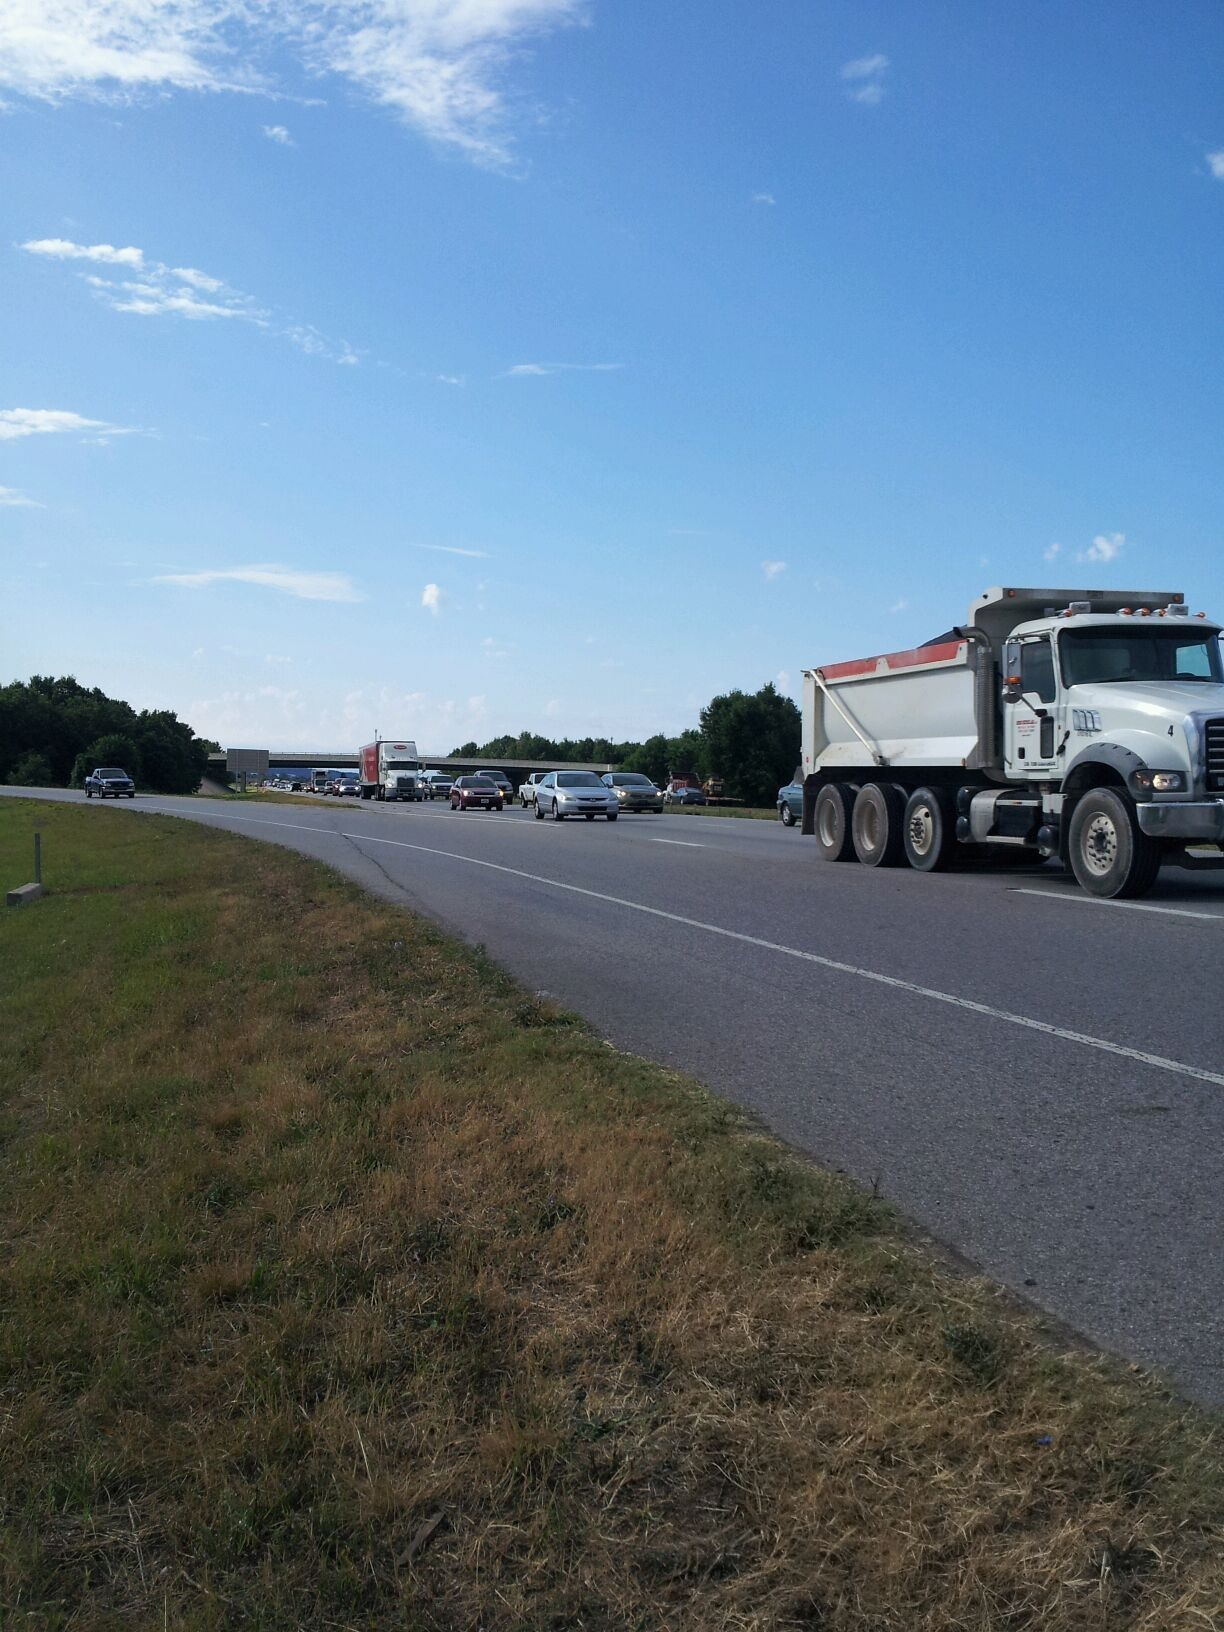 540 traffic near Exit 81 from Allison Woods